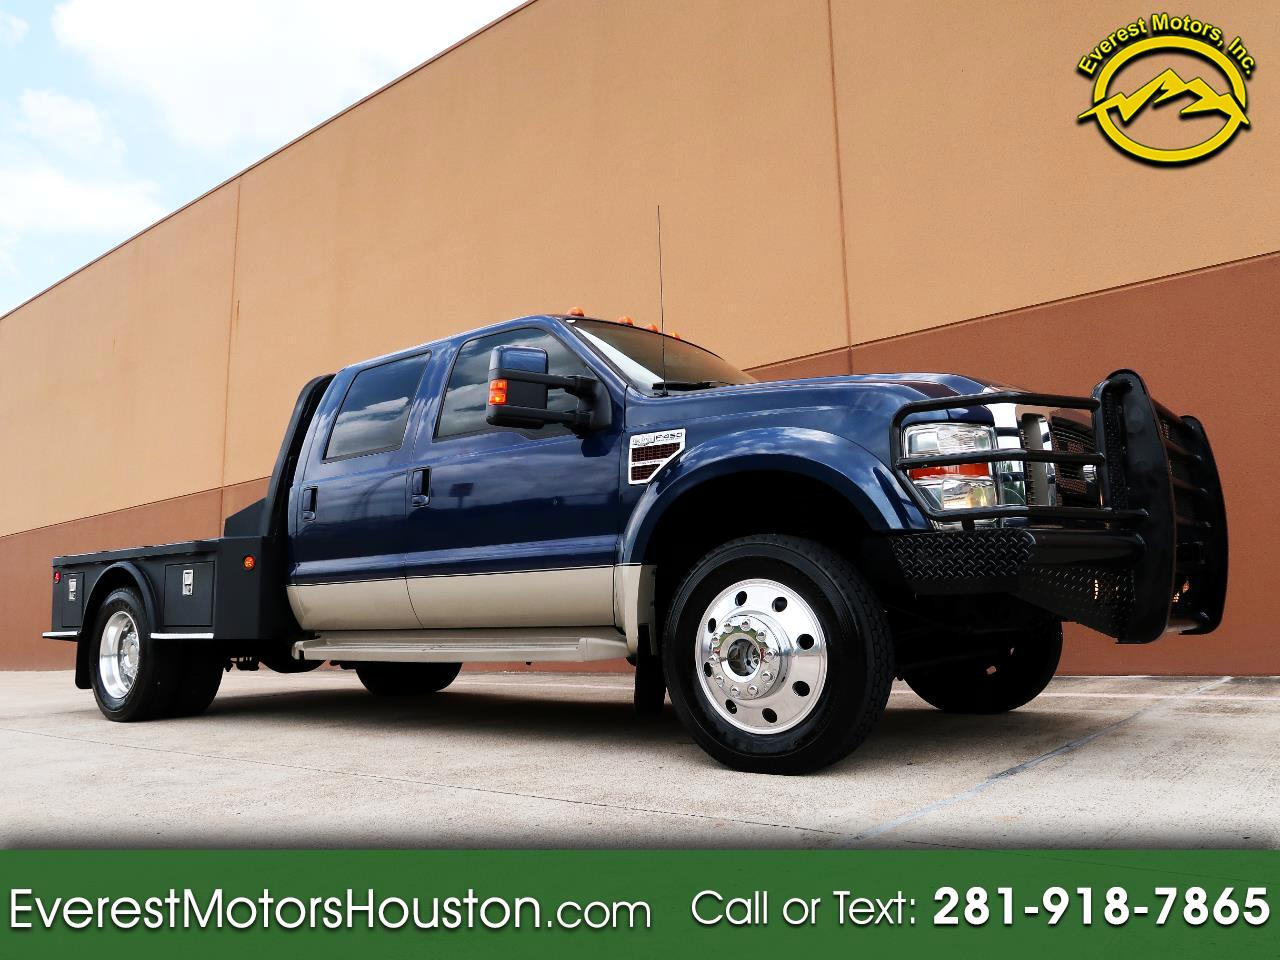 2008 Ford F-450 SD KING RANCH CREW CAB LWB 4WD DIESEL FLAT BED